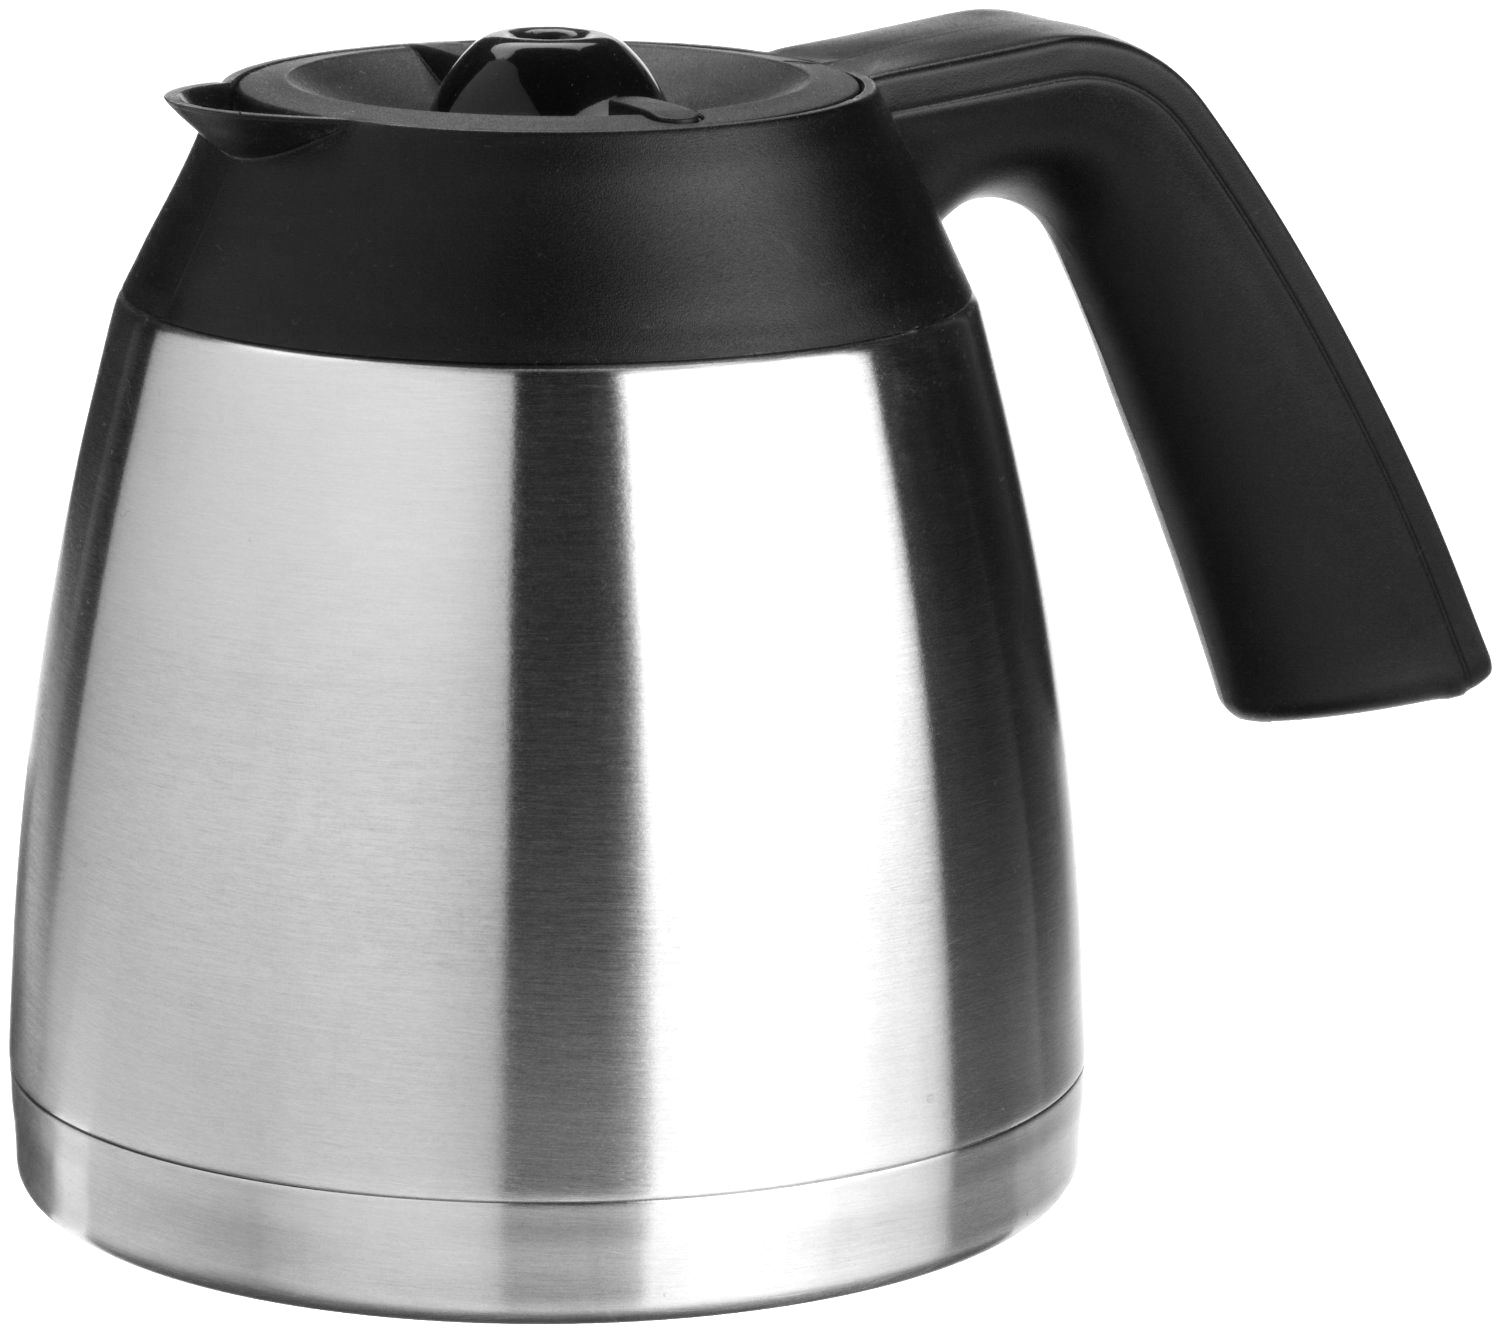 Capresso Thermal Double Wall Stainless Steel Carafe with Lid for MT600 Digital Coffee Maker, 10 Cup